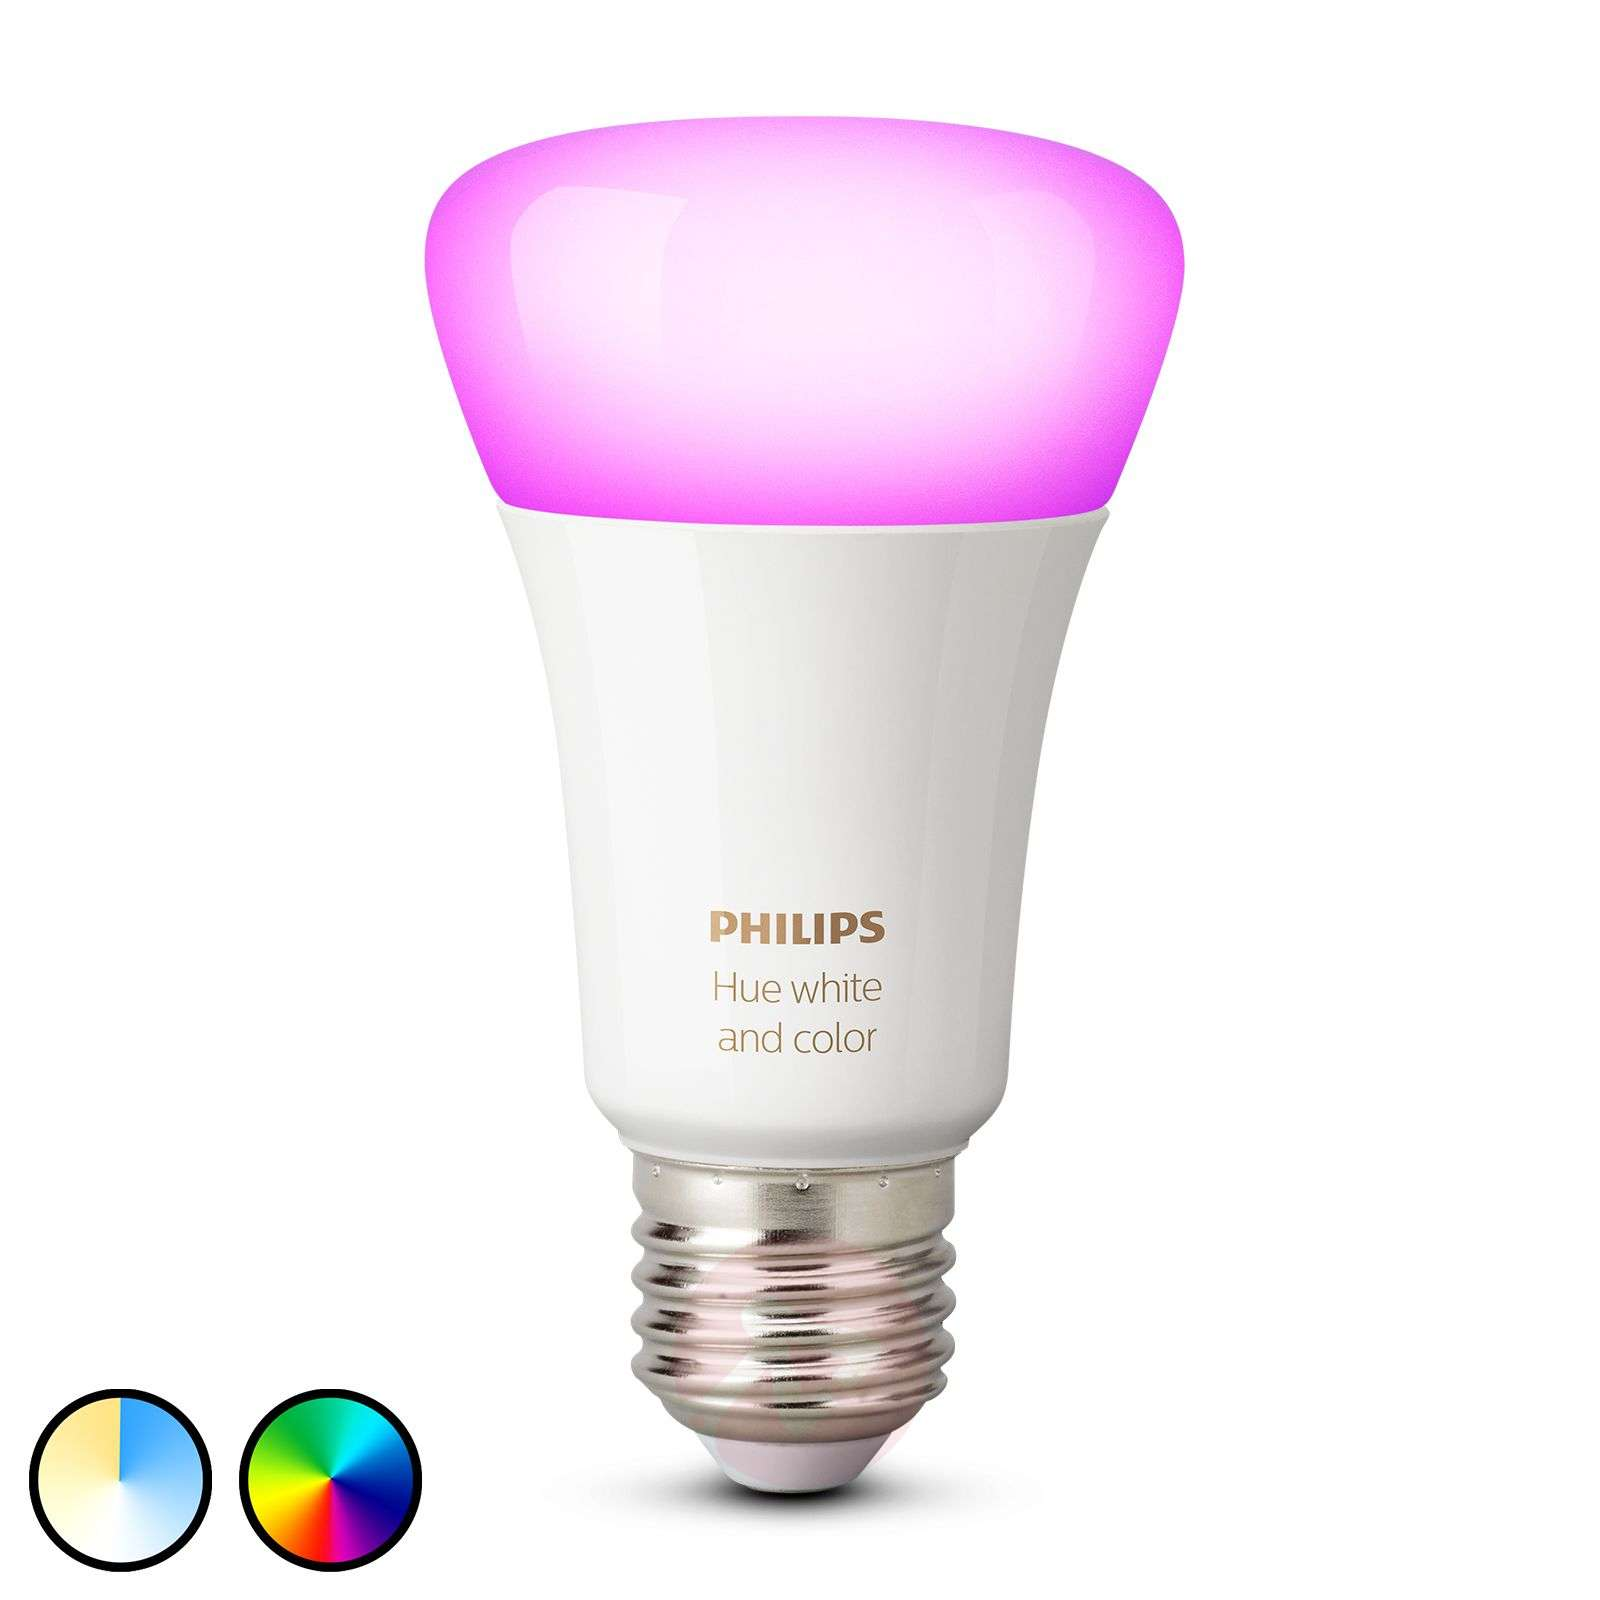 Philips Hue White and Color Ambiance 9W E27 LED-7534134-01